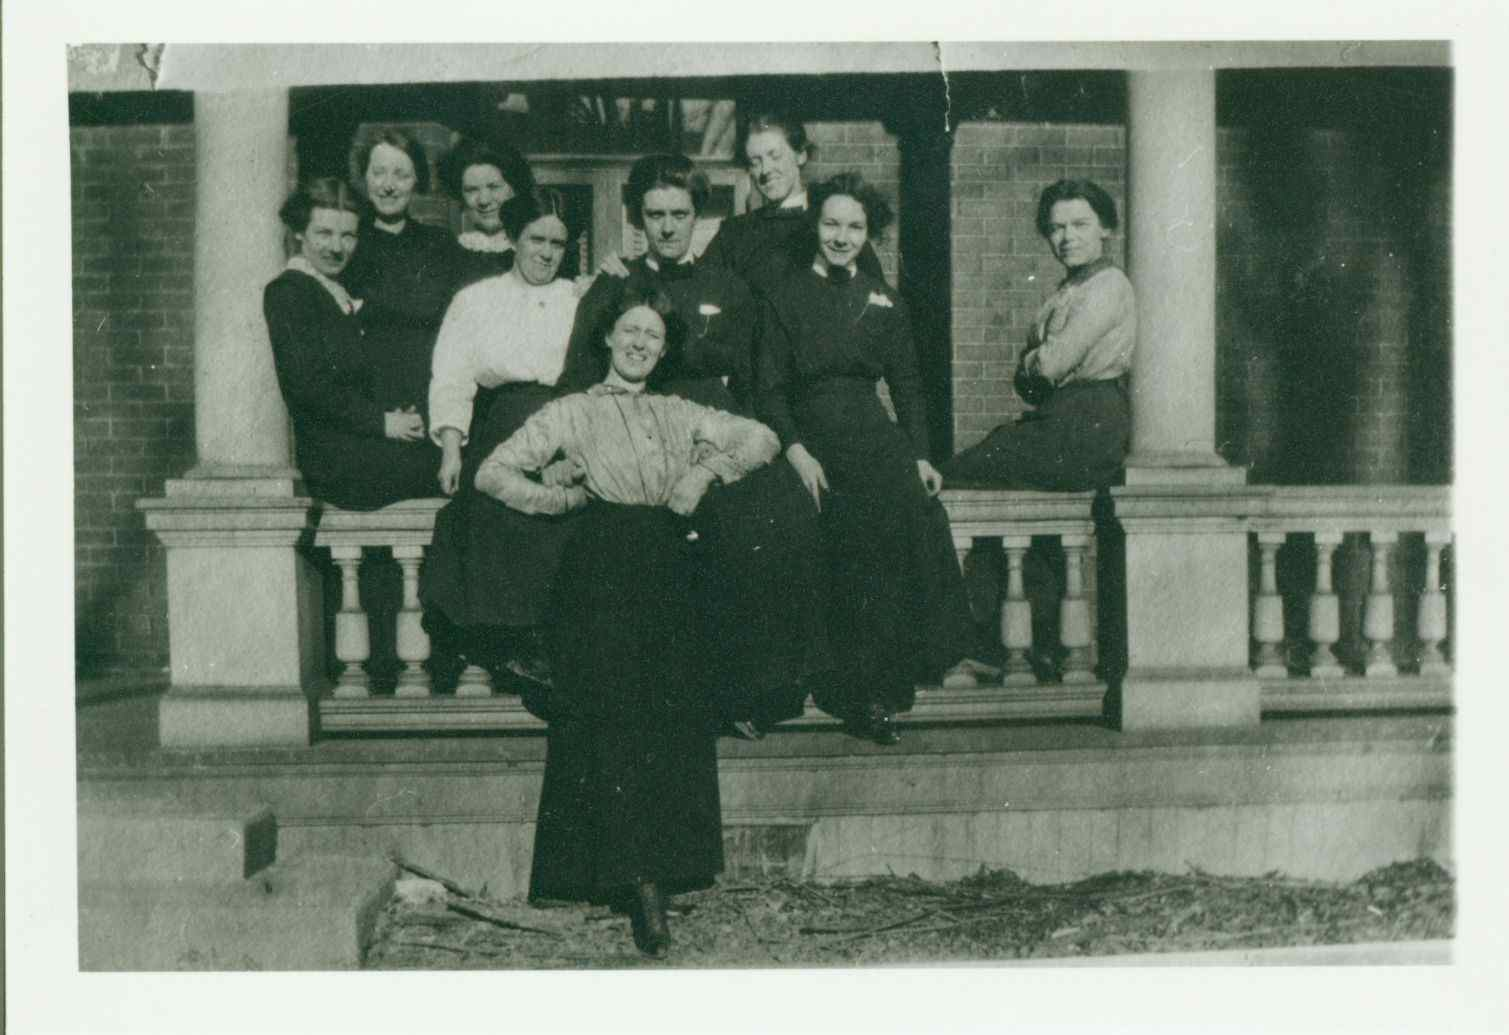 Presbyterian Deaconesses and or deaconess students at 60 Grosvenor circa early 1910s: Presbyterian Church in Canada Archives g-5177-fc-35